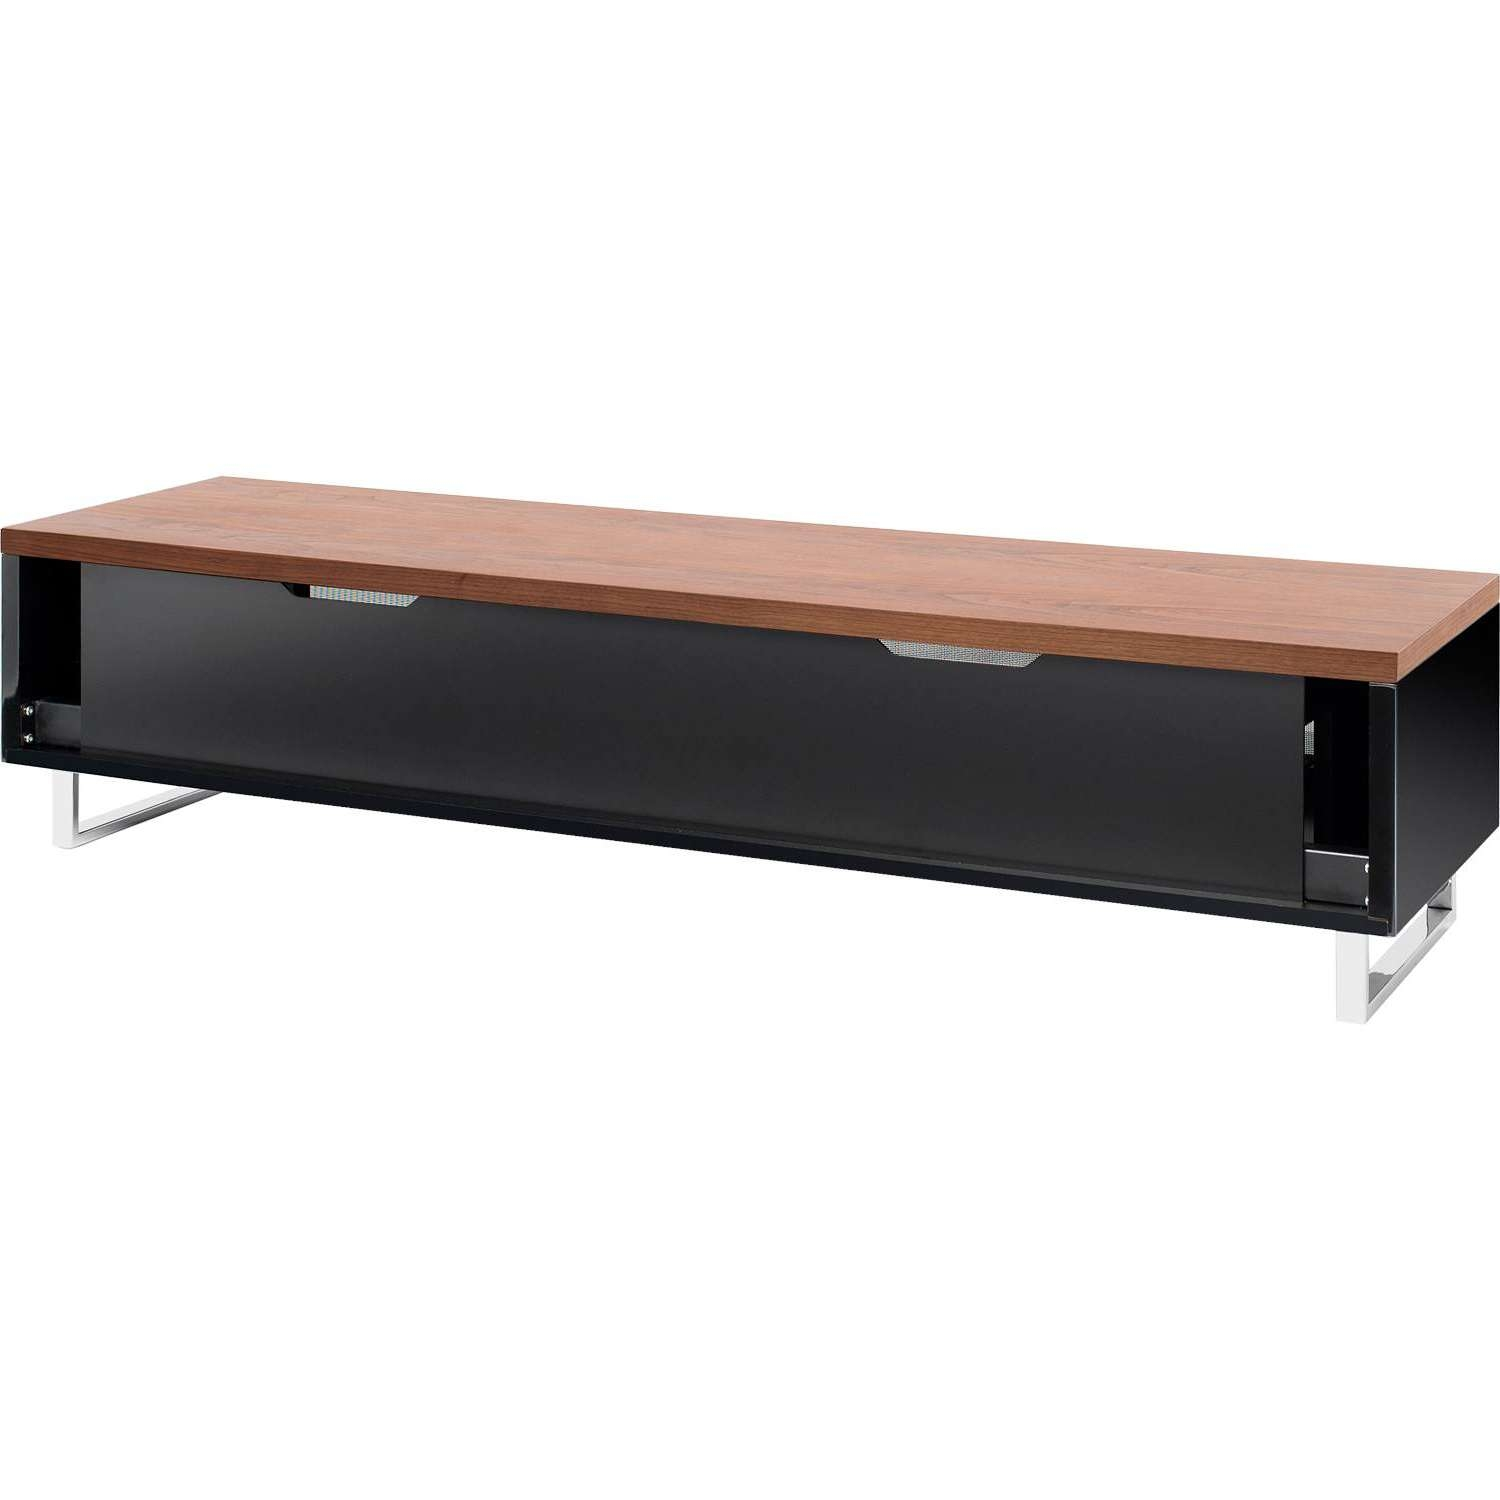 Techlink Panorama Pm160w Piano Black & Walunt Tv Stand For Up To Pertaining To Techlink Pm160w Panorama Tv Stands (View 4 of 15)